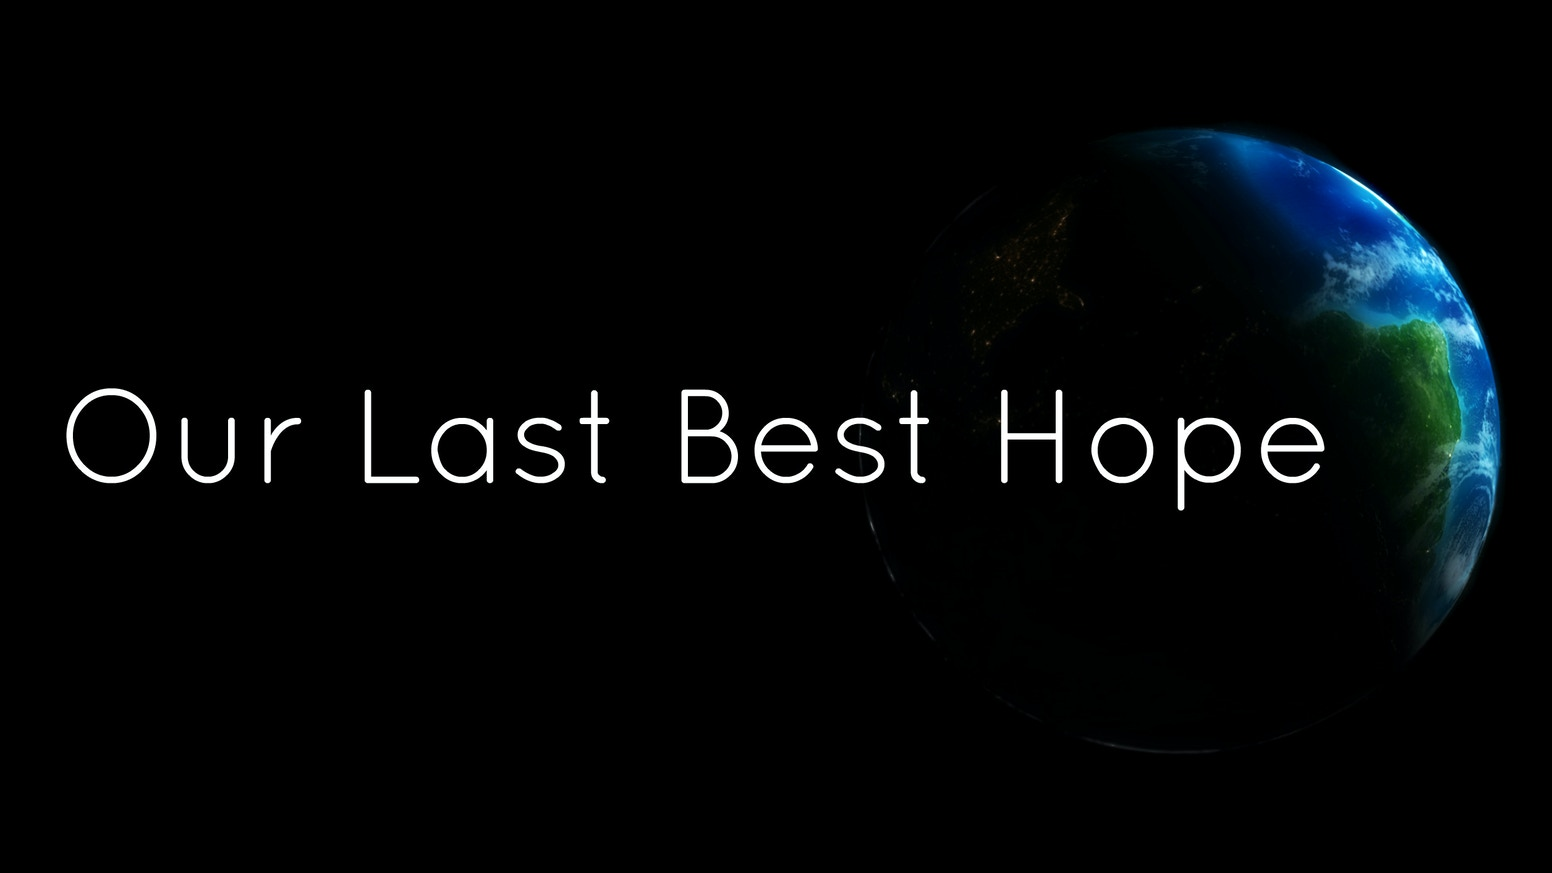 A Crisis threatens to wipe out Humanity. You are our last best hope to save the Earth. Are you willing to pay the ultimate price?